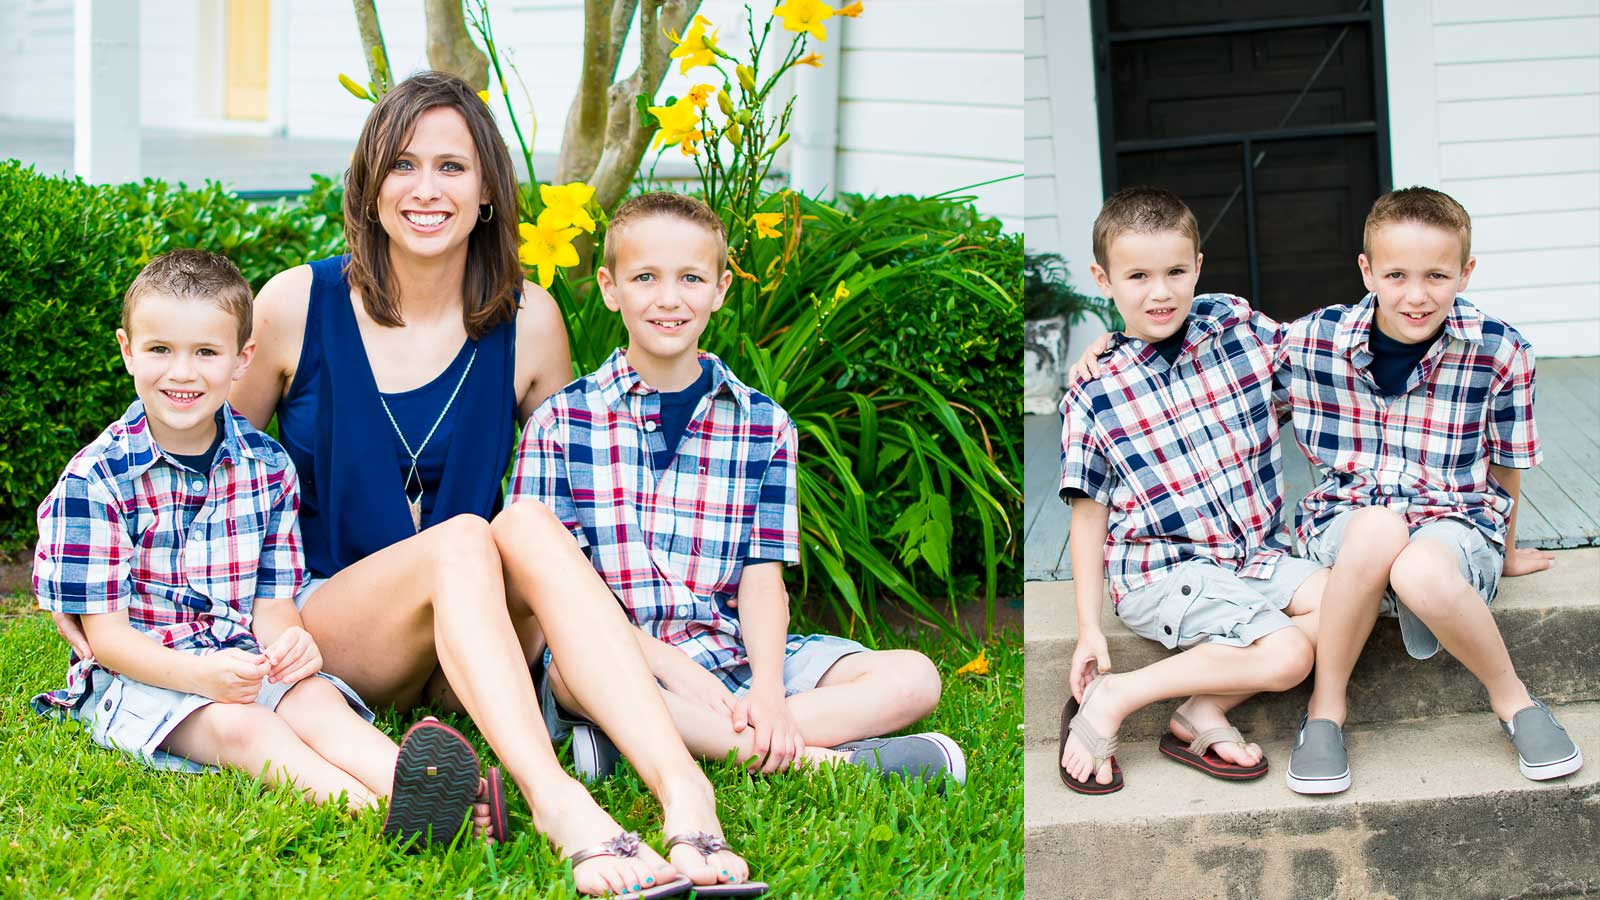 Portrait of mom with two young boys in yard by Needville, Texas family photographer Kristen Richards